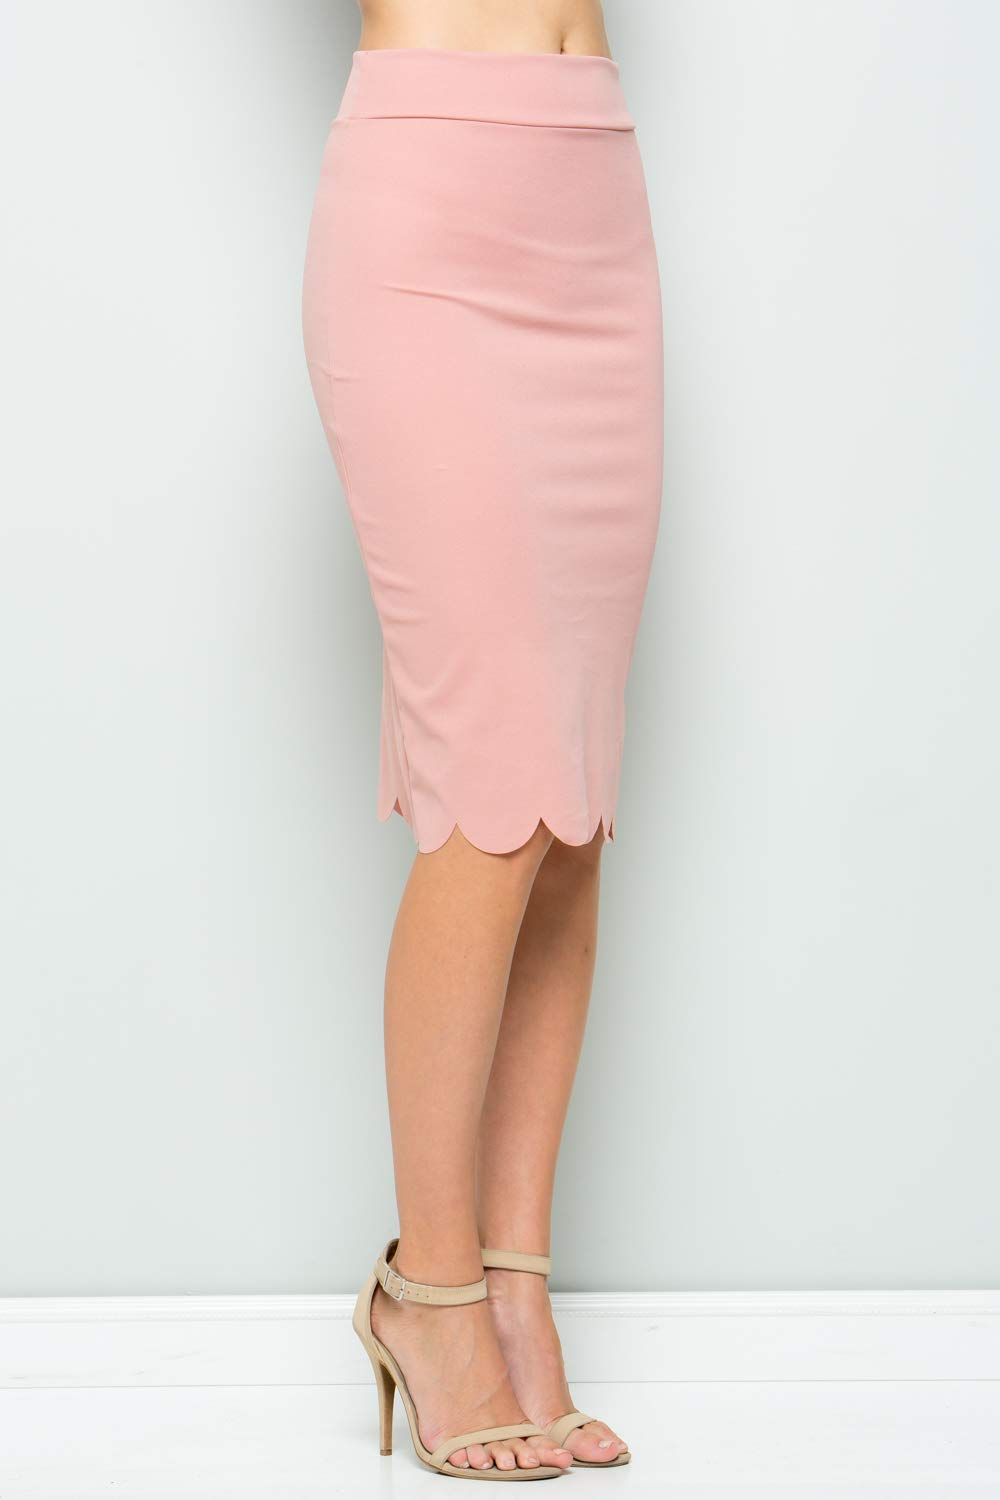 Junky Closet Women's Scallops Knee Length High Waisted Pencil Skirt (Made in USA) (1X-Large, 3635CLAF Dusty Pink) by Junky Closet (Image #3)